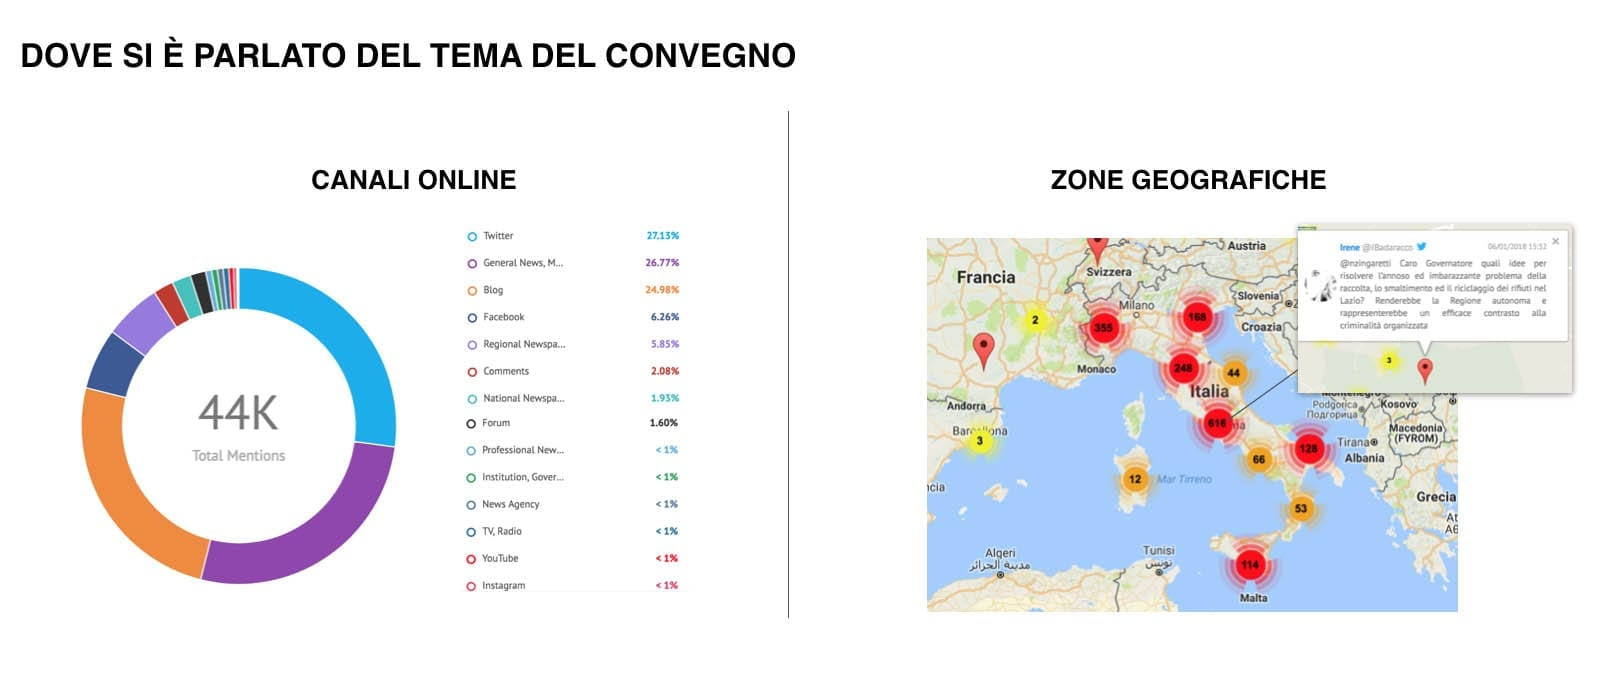 canali online e zone geografiche - social listeing